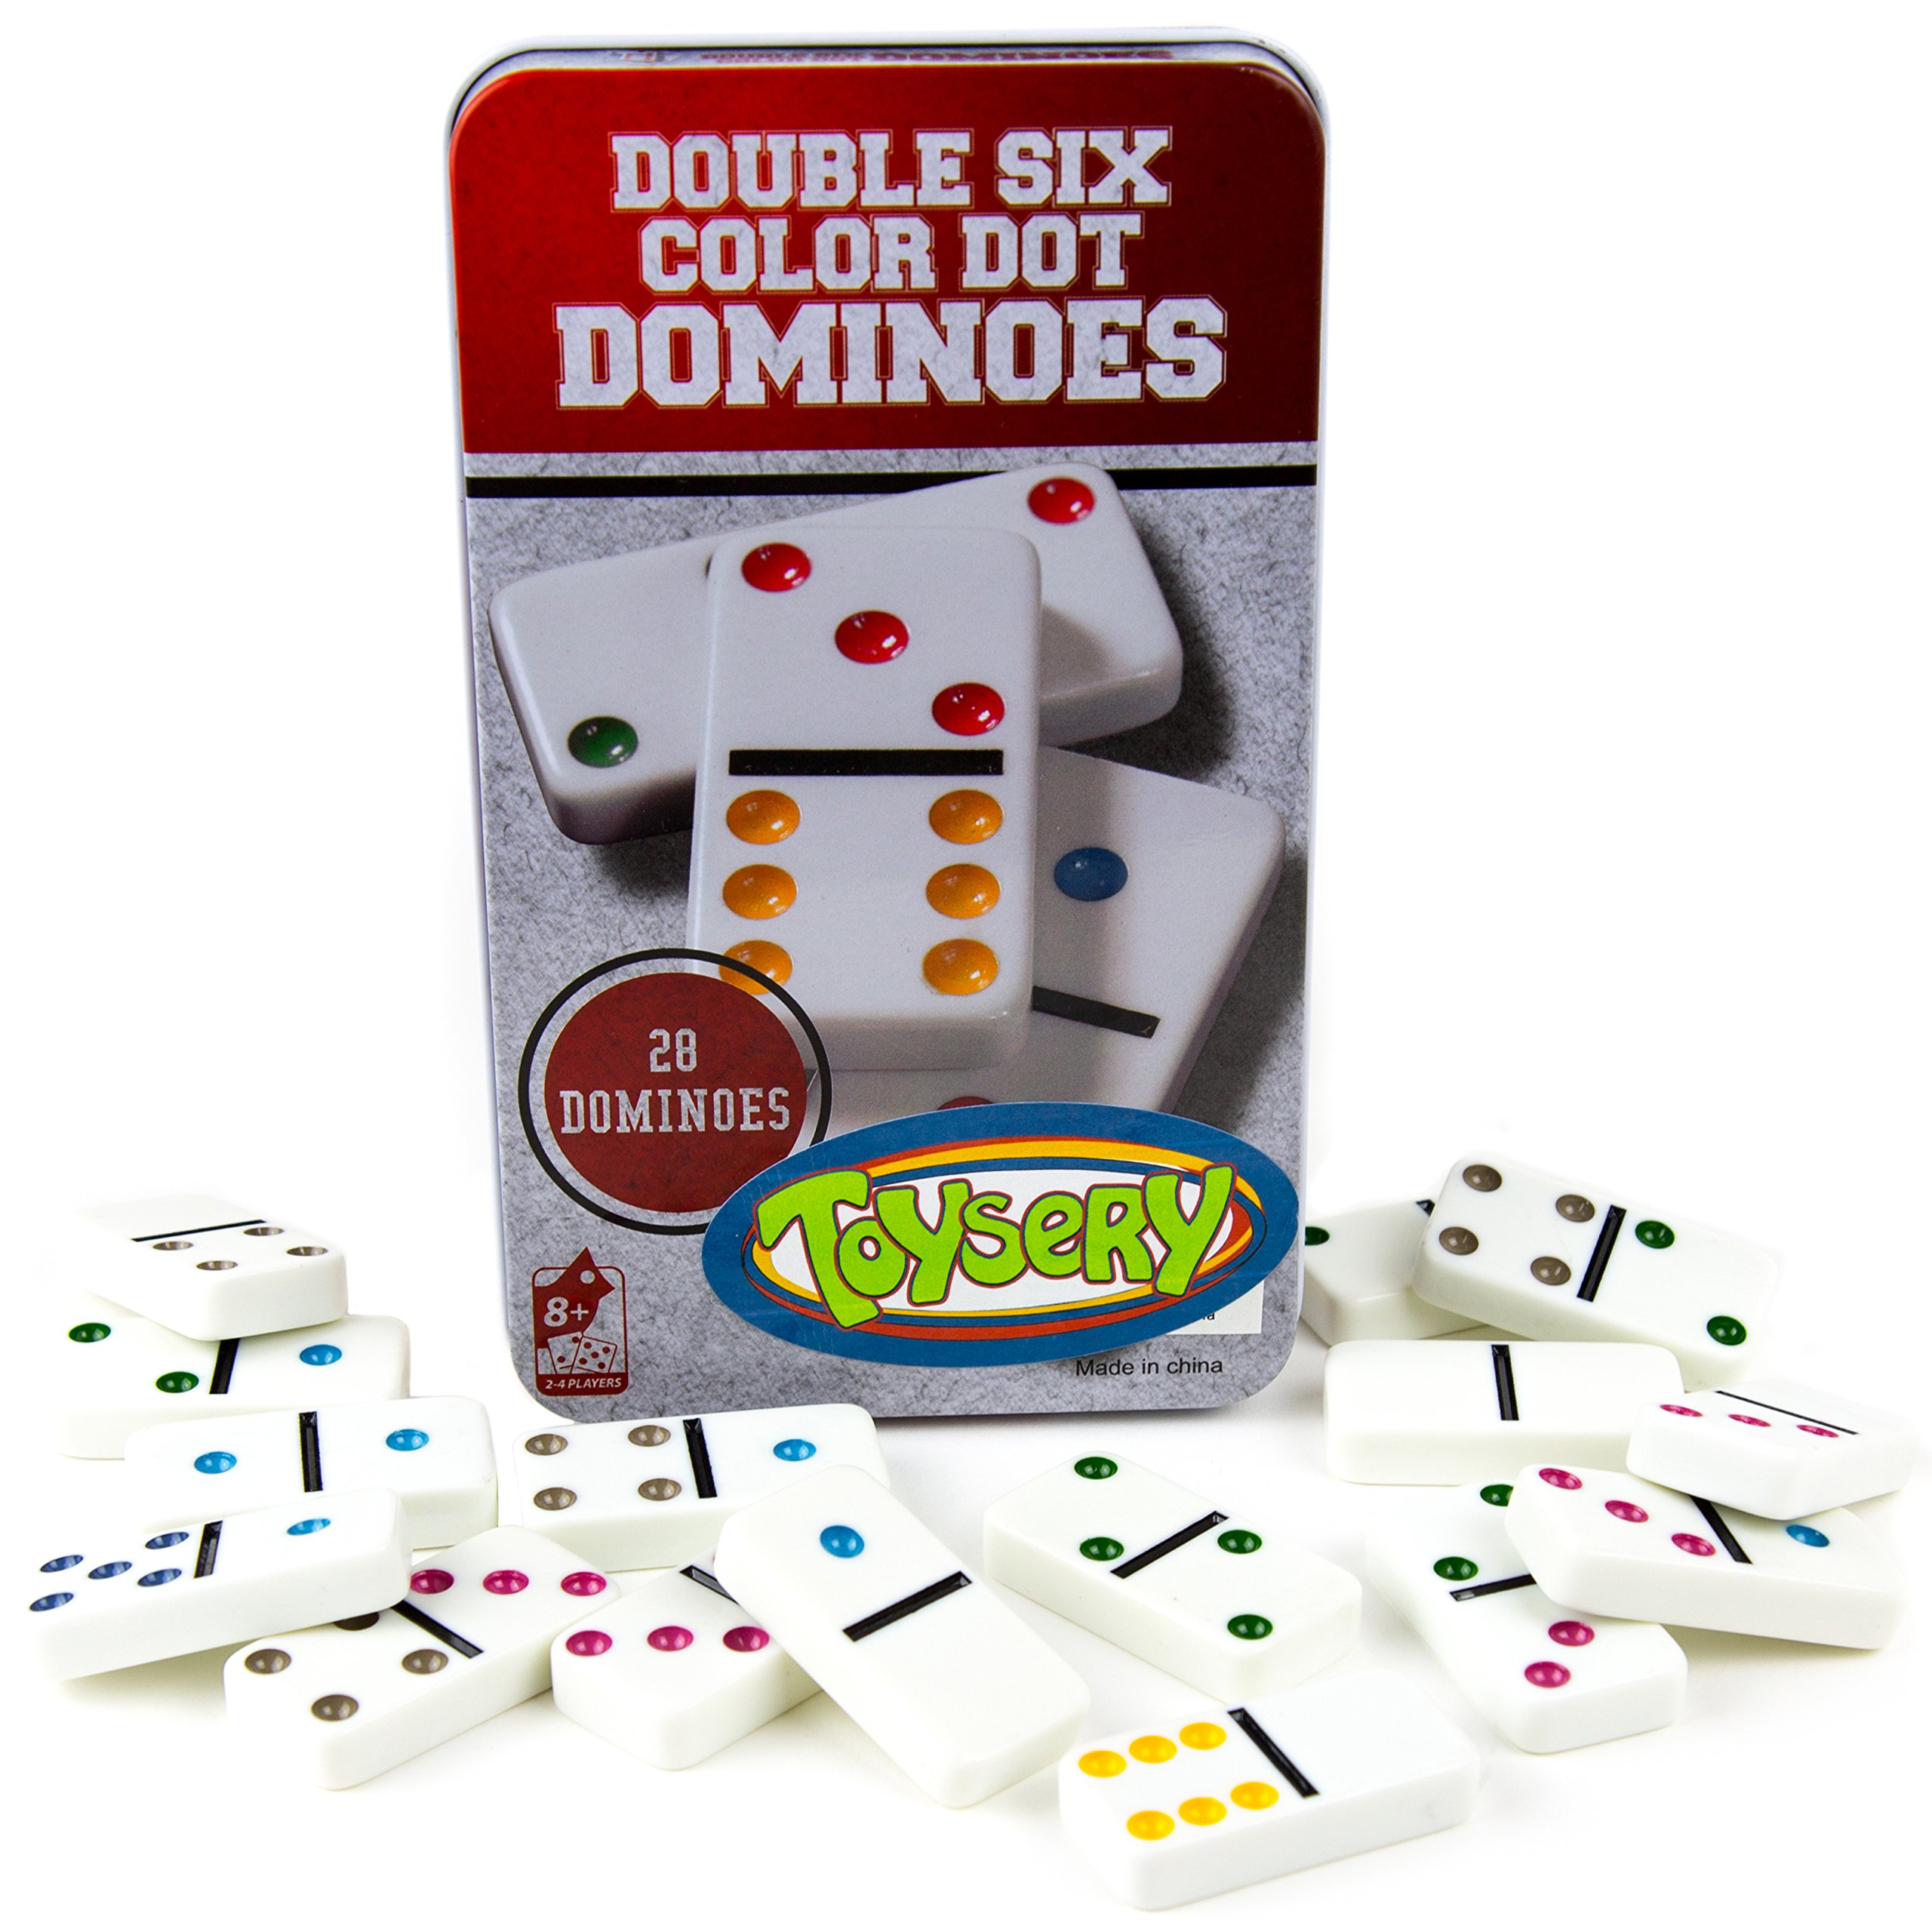 Toysery Double 6 Color Dot Dominoes Game Set - White Dominoes 28 Piece Set Toy in Tin Case - Six Dot Dominoes Match & Educational Game by Toysery